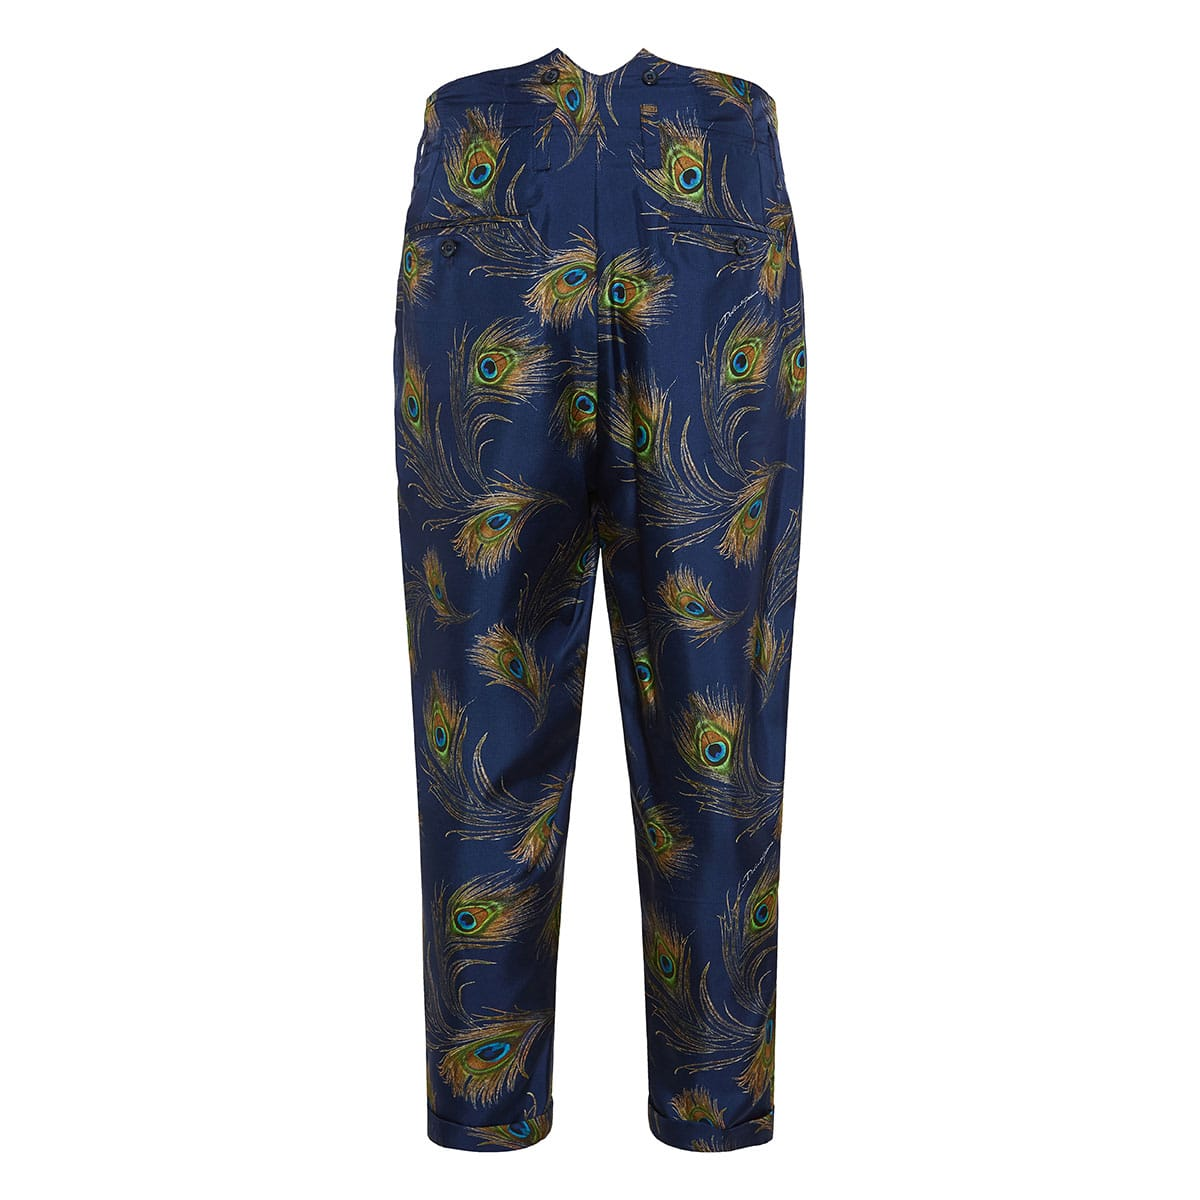 Peacock print darted cropped trousers